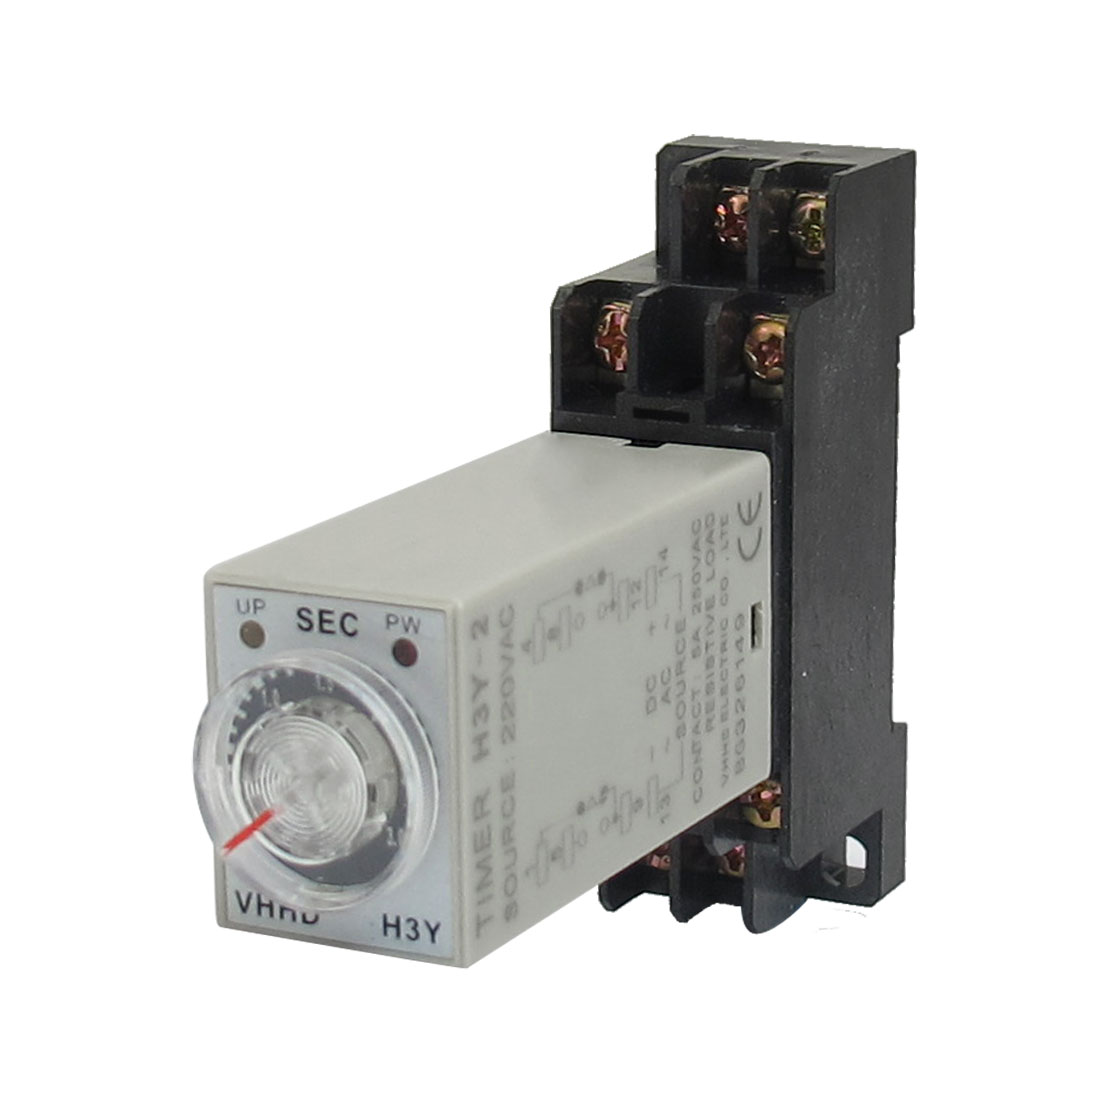 AC 220V H3Y-2 0-3S DPDT 8 Pins Power on Time Delay Relay w Base